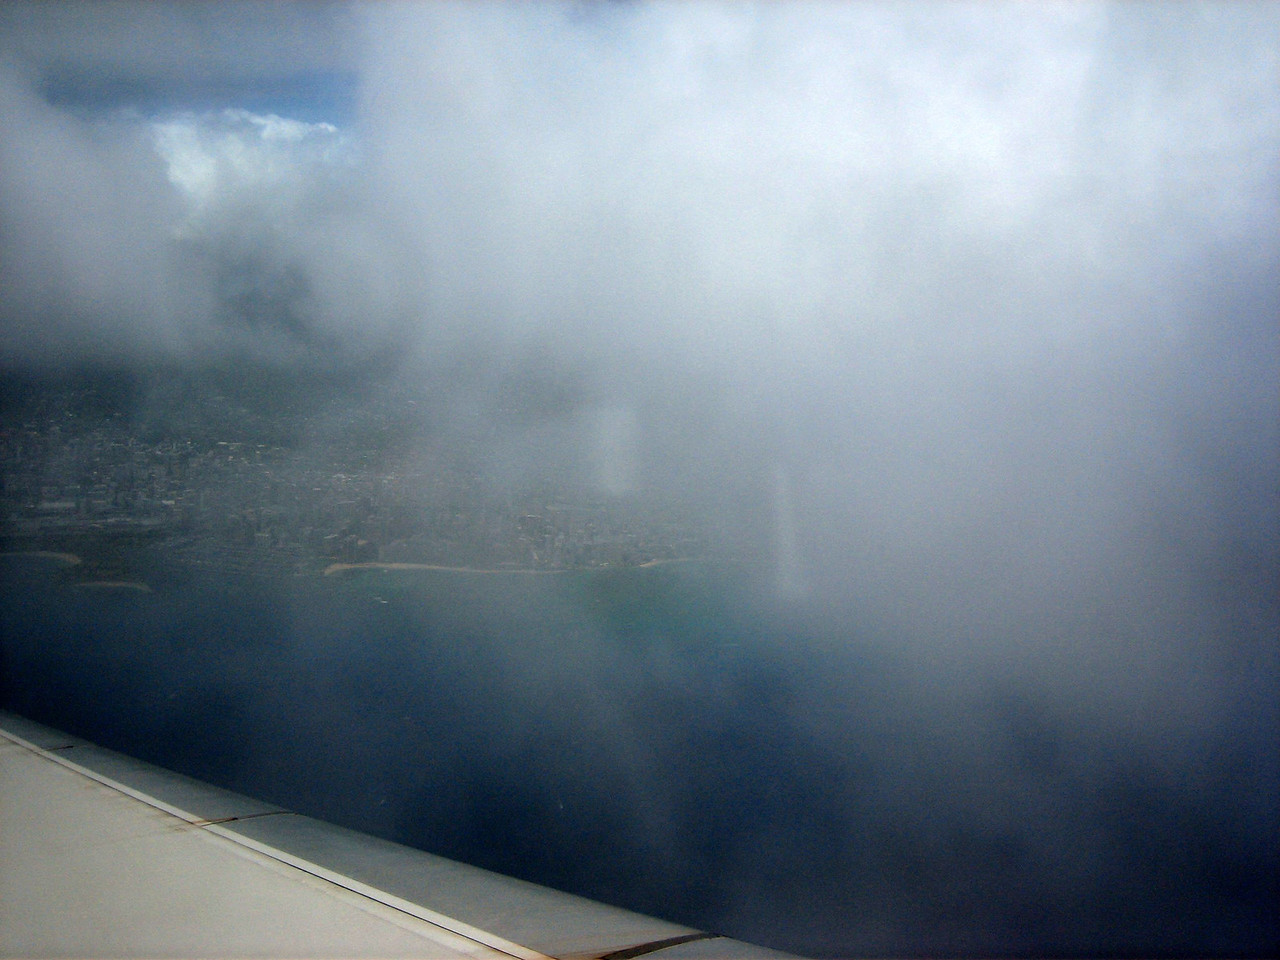 Entering the clouds above Honolulu.